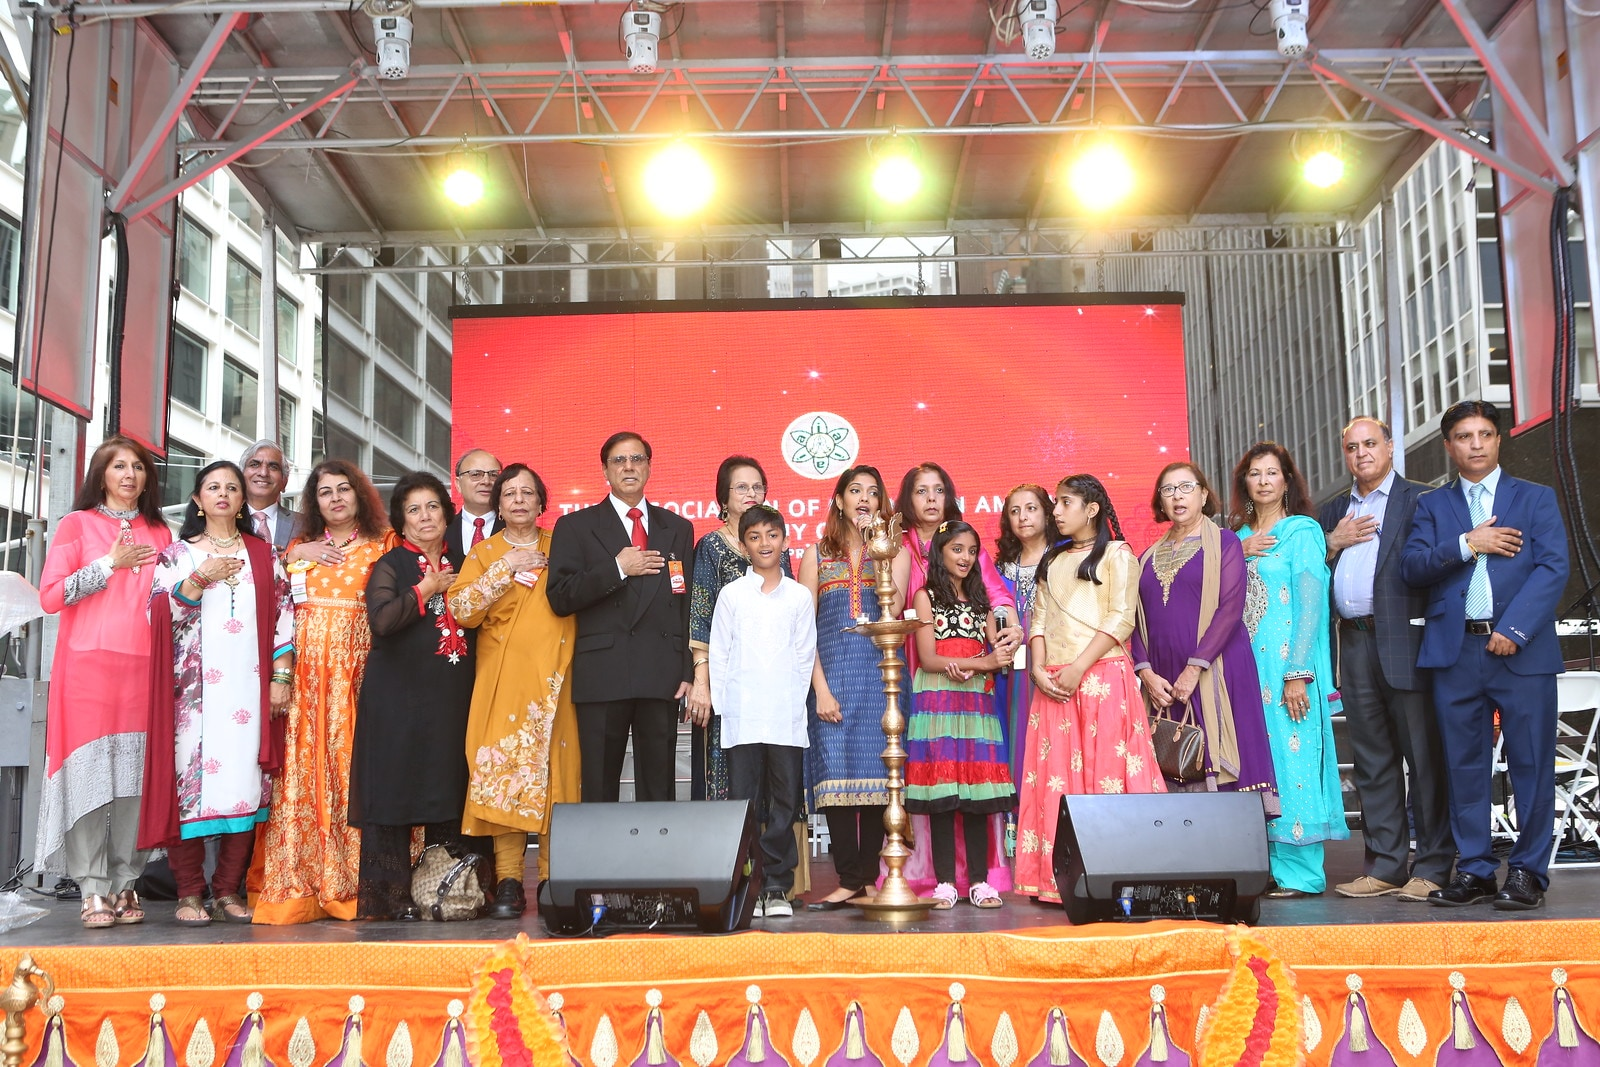 The AIA Committee at Deepavali Mela at South Street Seaport.